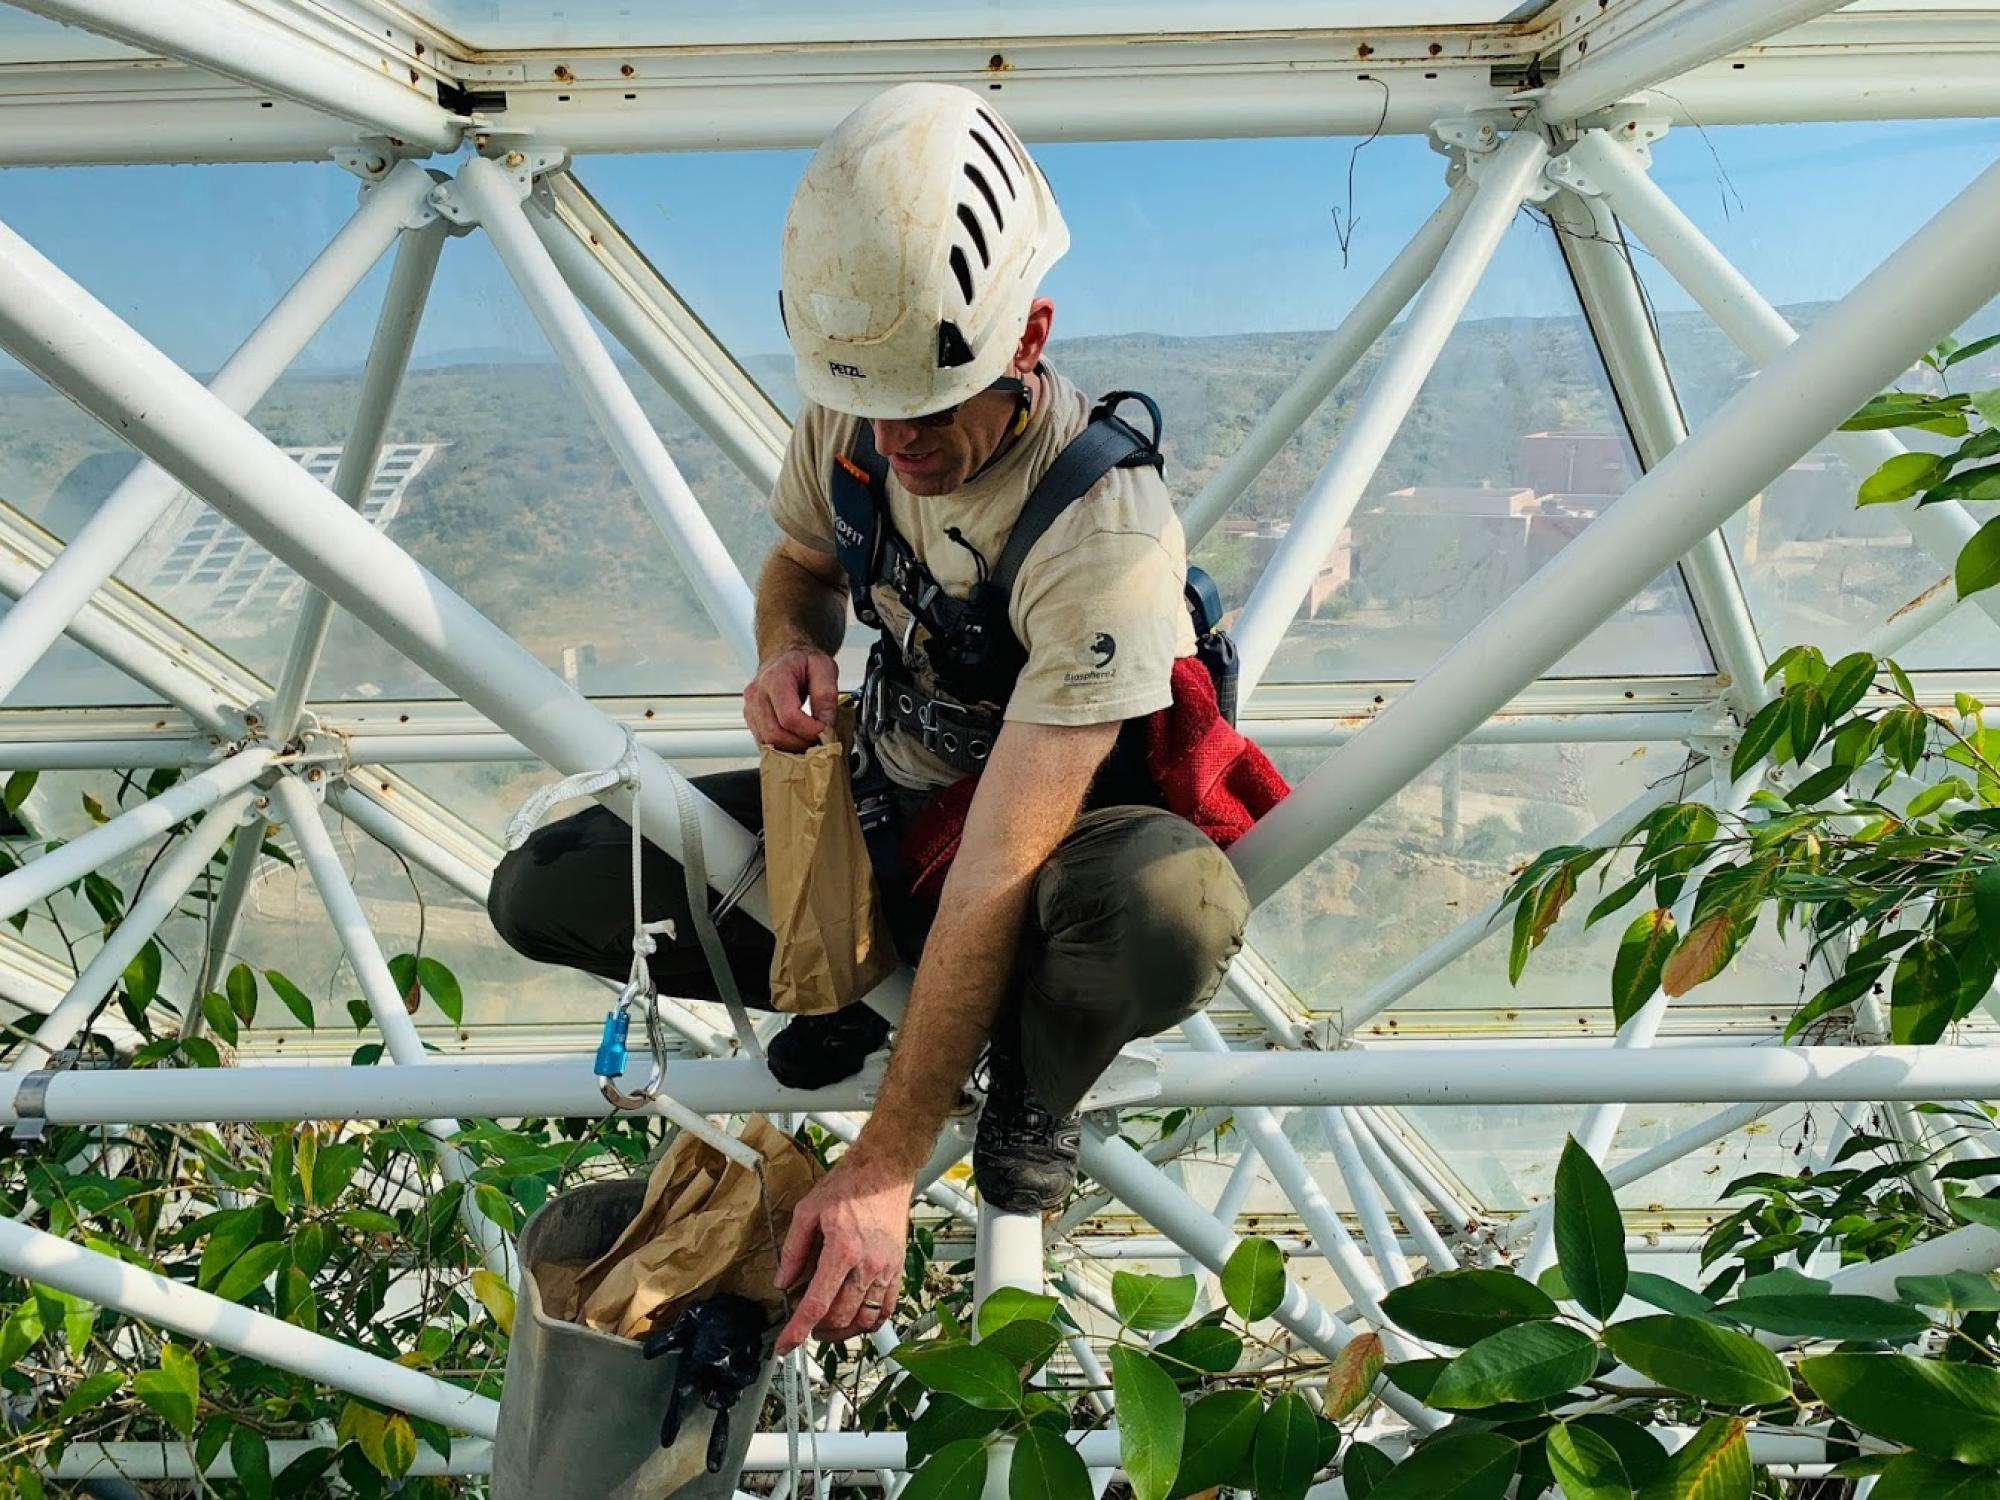 Jason Deleeuw, Biosphere 2 rain forest manager, climbs the space frame above the rain forest floor to collect leaves and samplers placed overnight to link leaf climate, microbiome and volatile organic compound emissions.